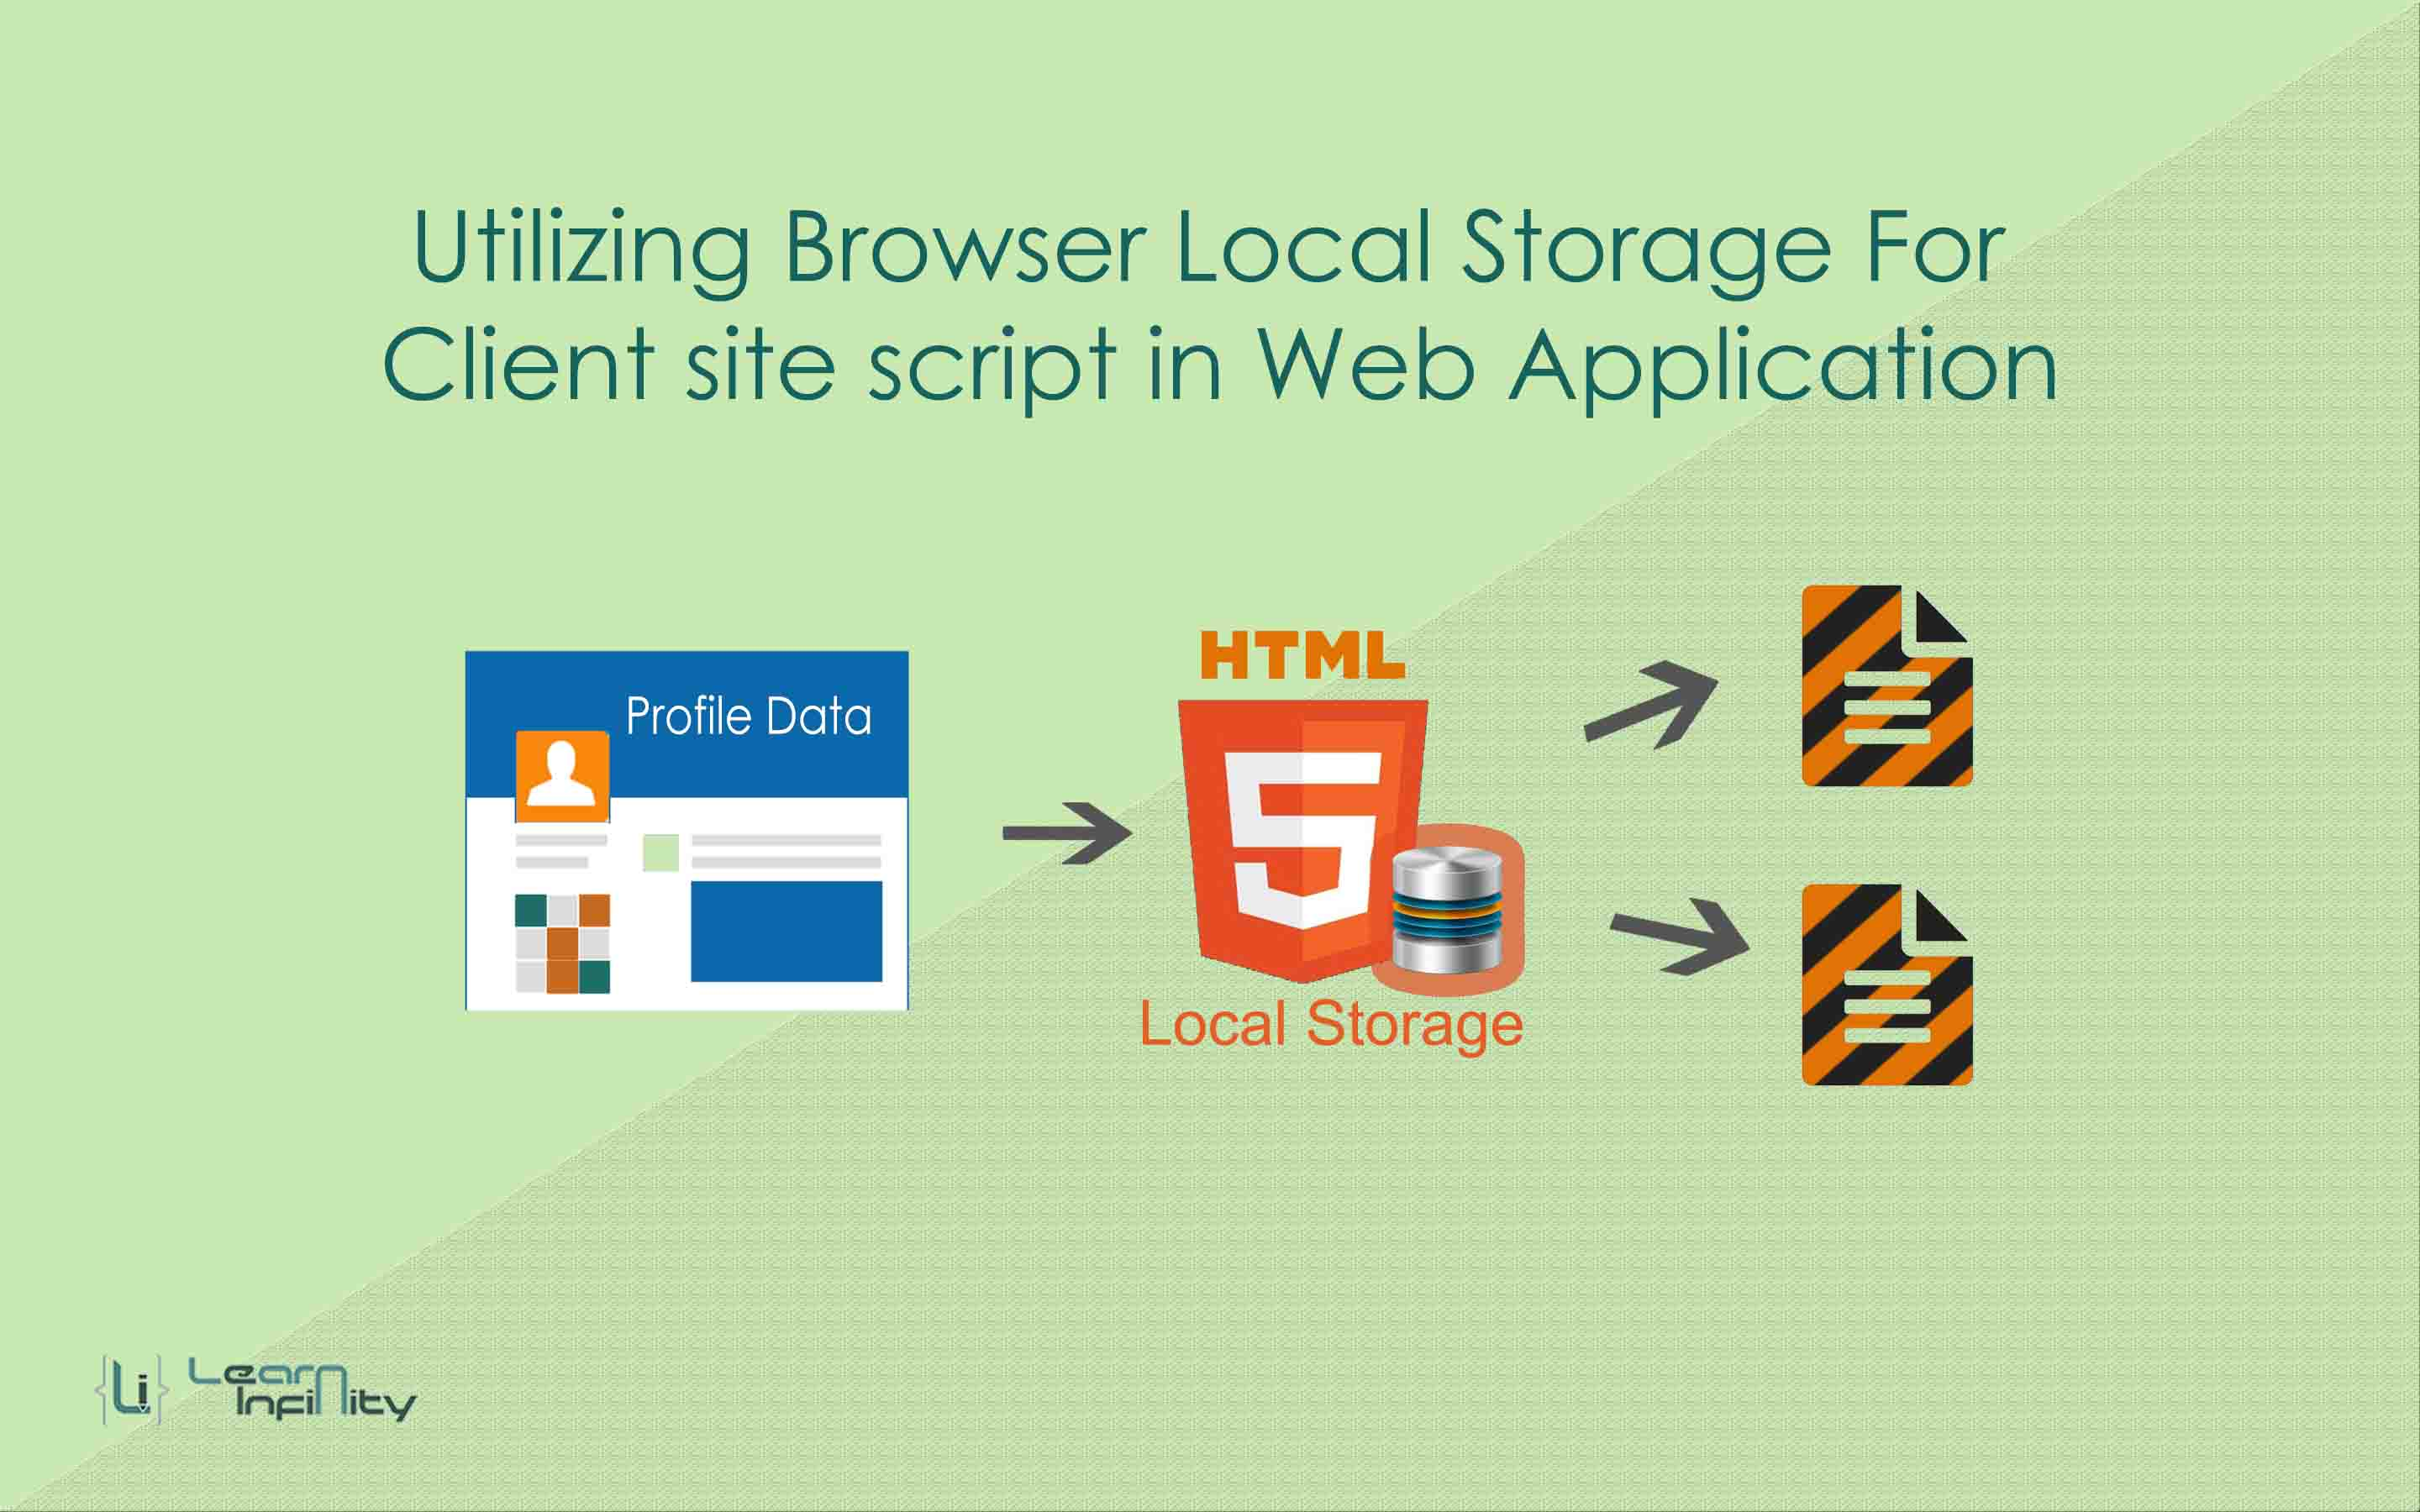 Utilizing browser local storage for client side script in any web application